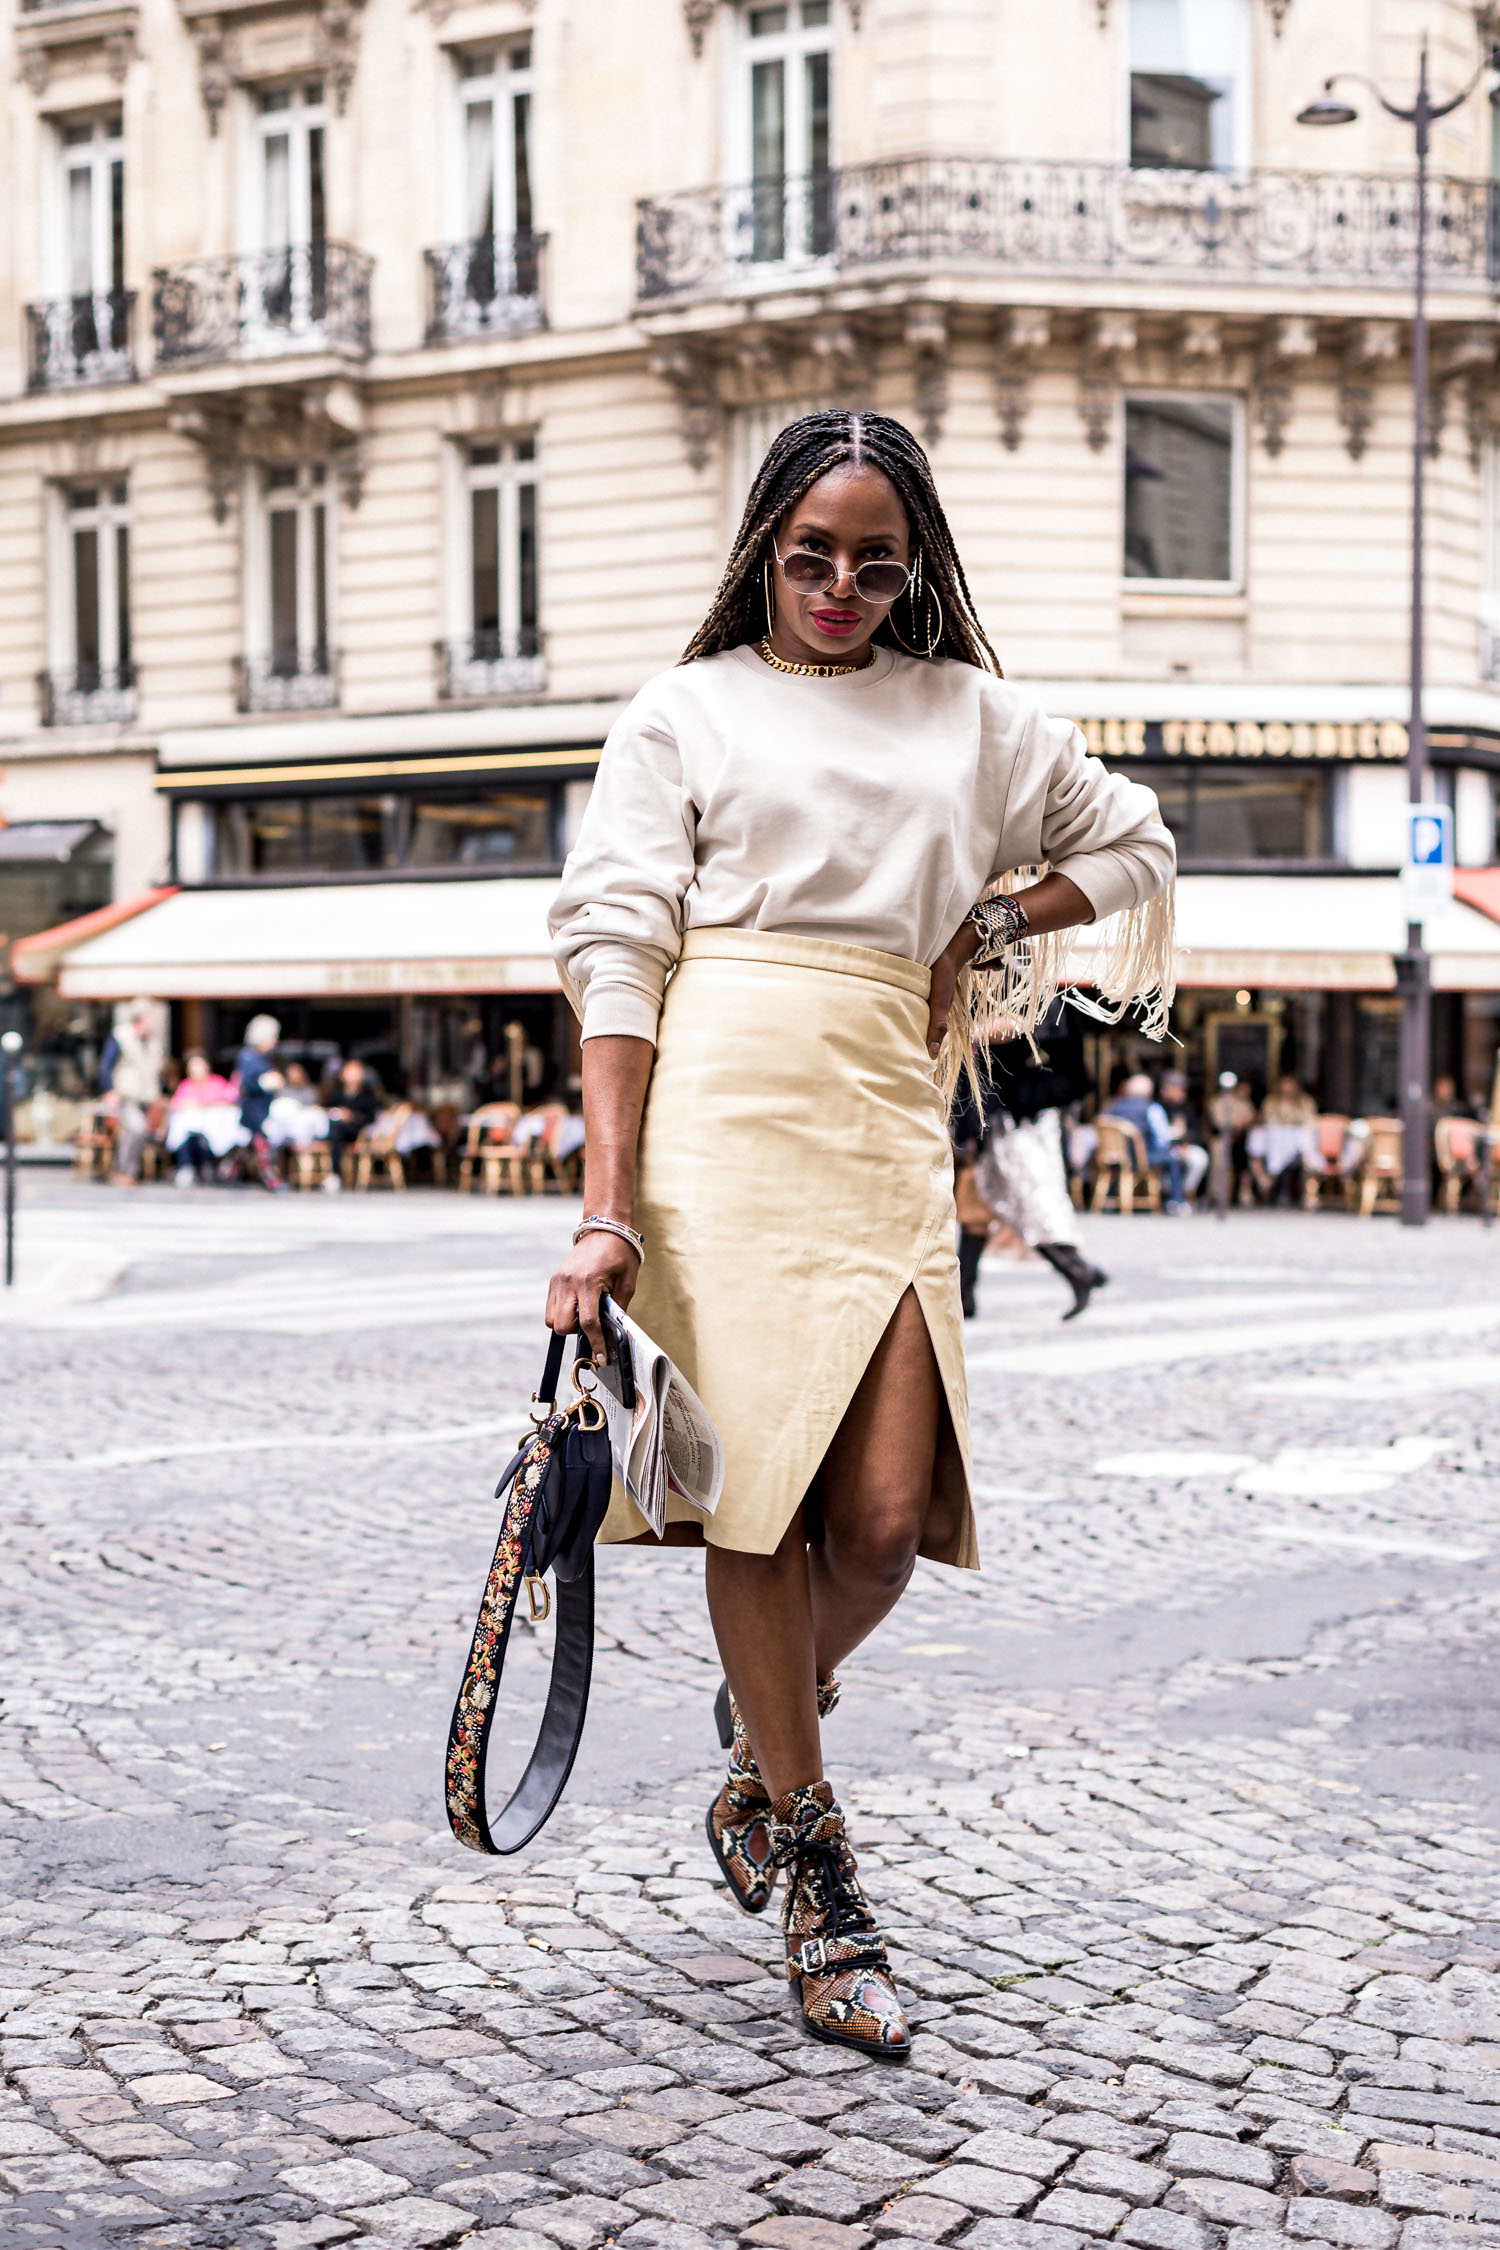 instagram lately, top fashion blogger shares best moments from paris fashion week from instagram